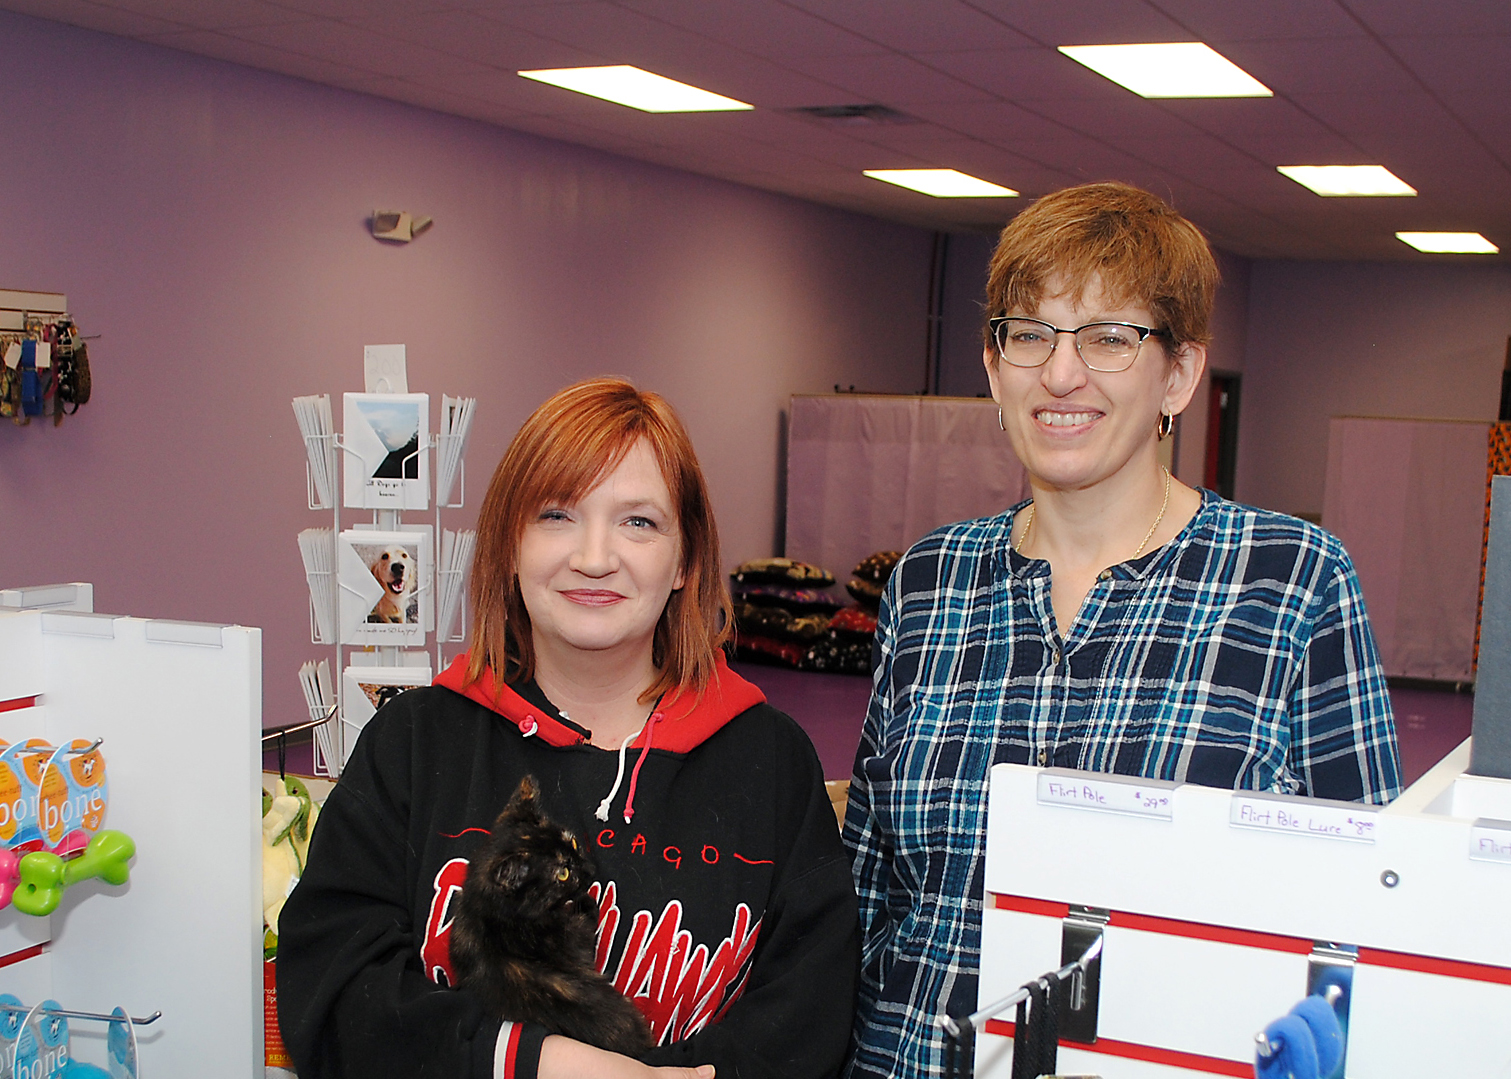 Lori Fricks, left, and Renee Fritz offer dog training, grooming, products and food at their new store Positively Canine, 3276 E. Ind. 32. (Photo by Robert Herrington)